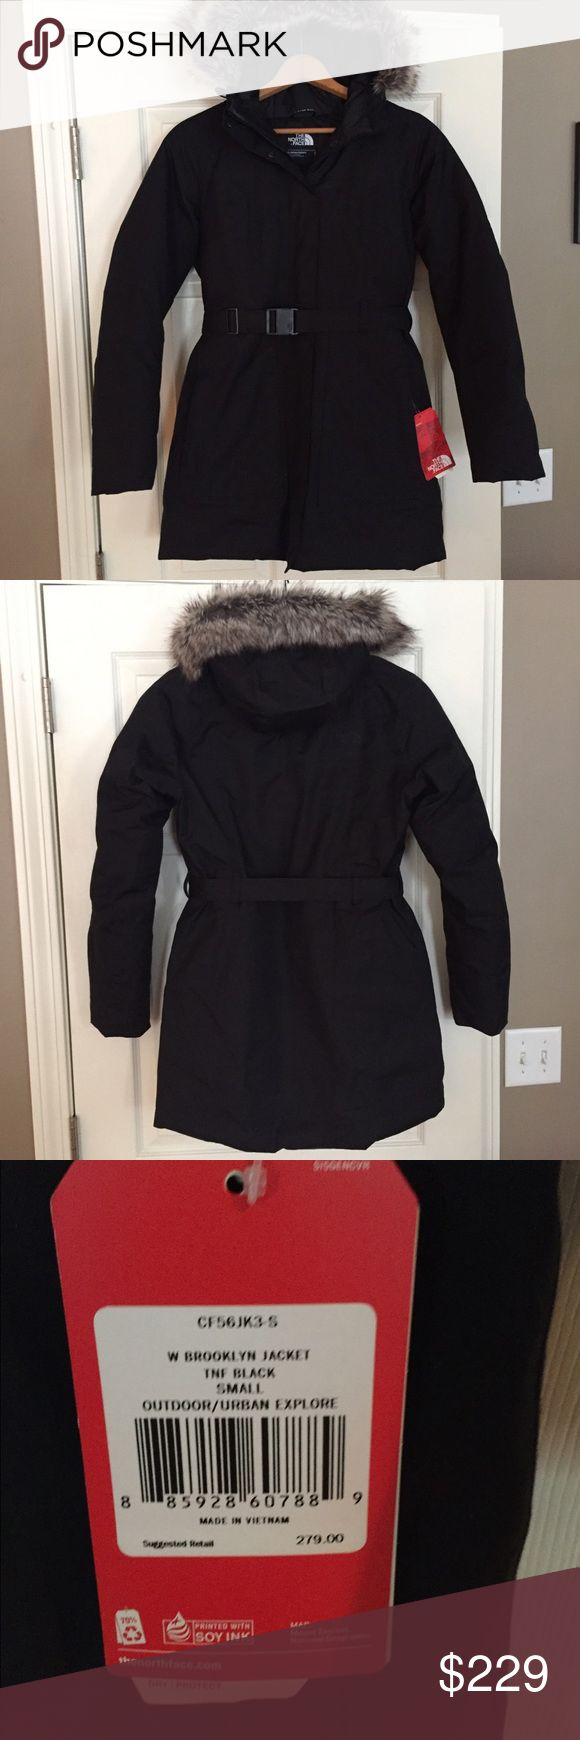 The North Face Brooklyn Jacket Black Parka Small Very stylish and warm!  I've only tried this on a couple of times.  Brand new with tags attached.  Retail: $279 Size Small Note in last photo: The edge of the fabric at the bottom of the zipper just needs to be ironed down, think it was folded up while being shipped.  Nonsmoking household.  Ships same day. The North Face Jackets & Coats Puffers